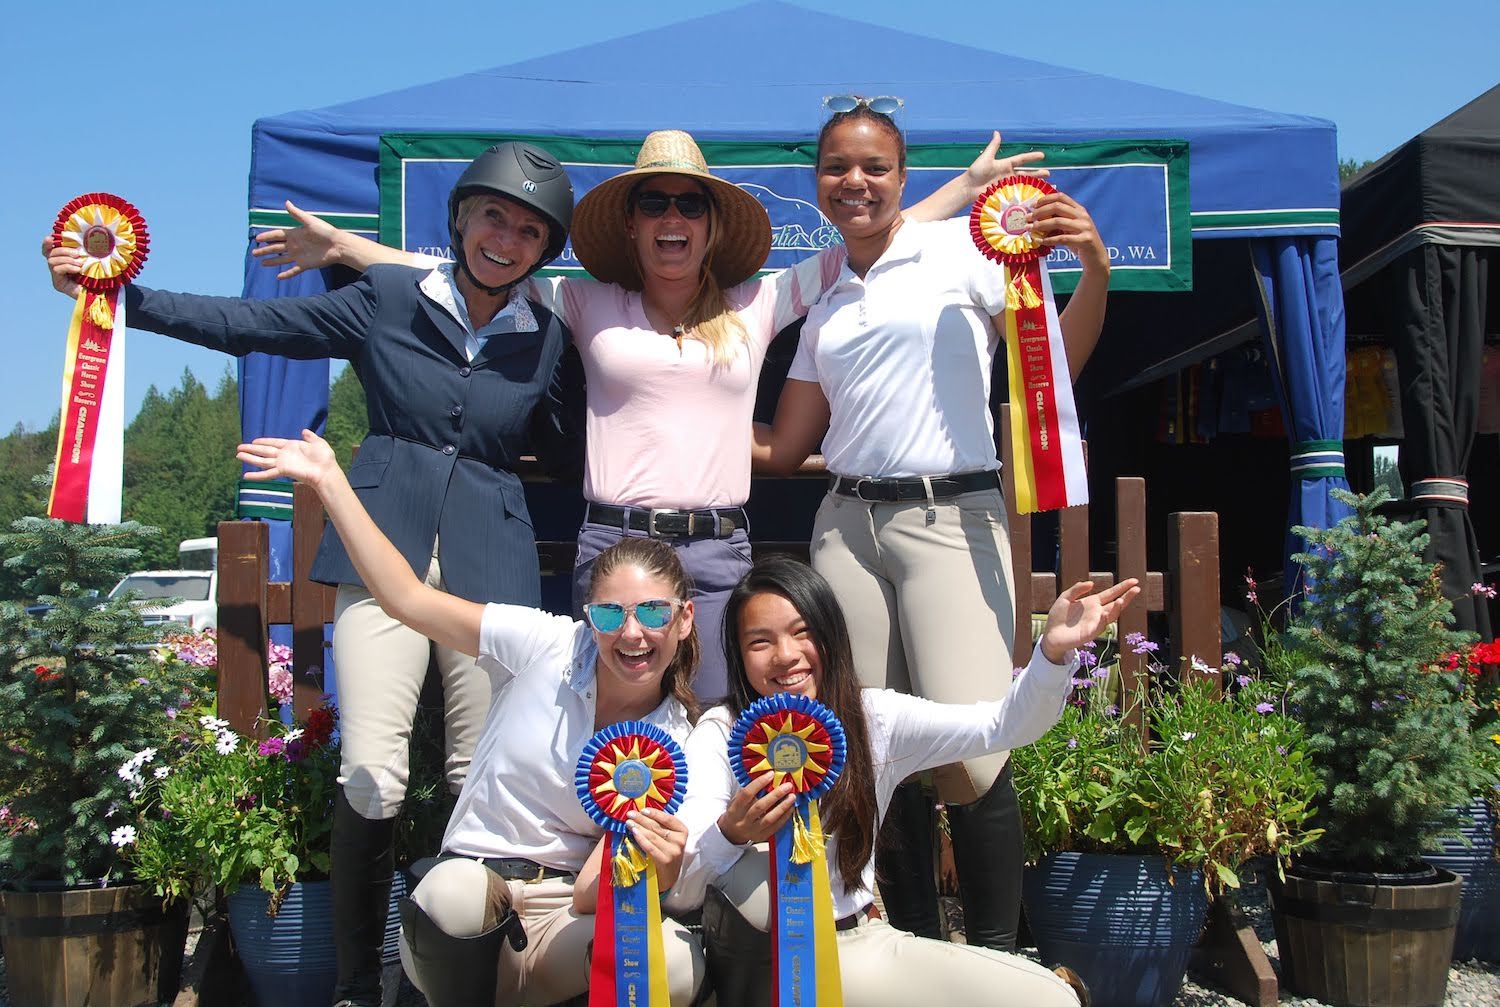 Magnolia Ridge riders posing with their ribbons